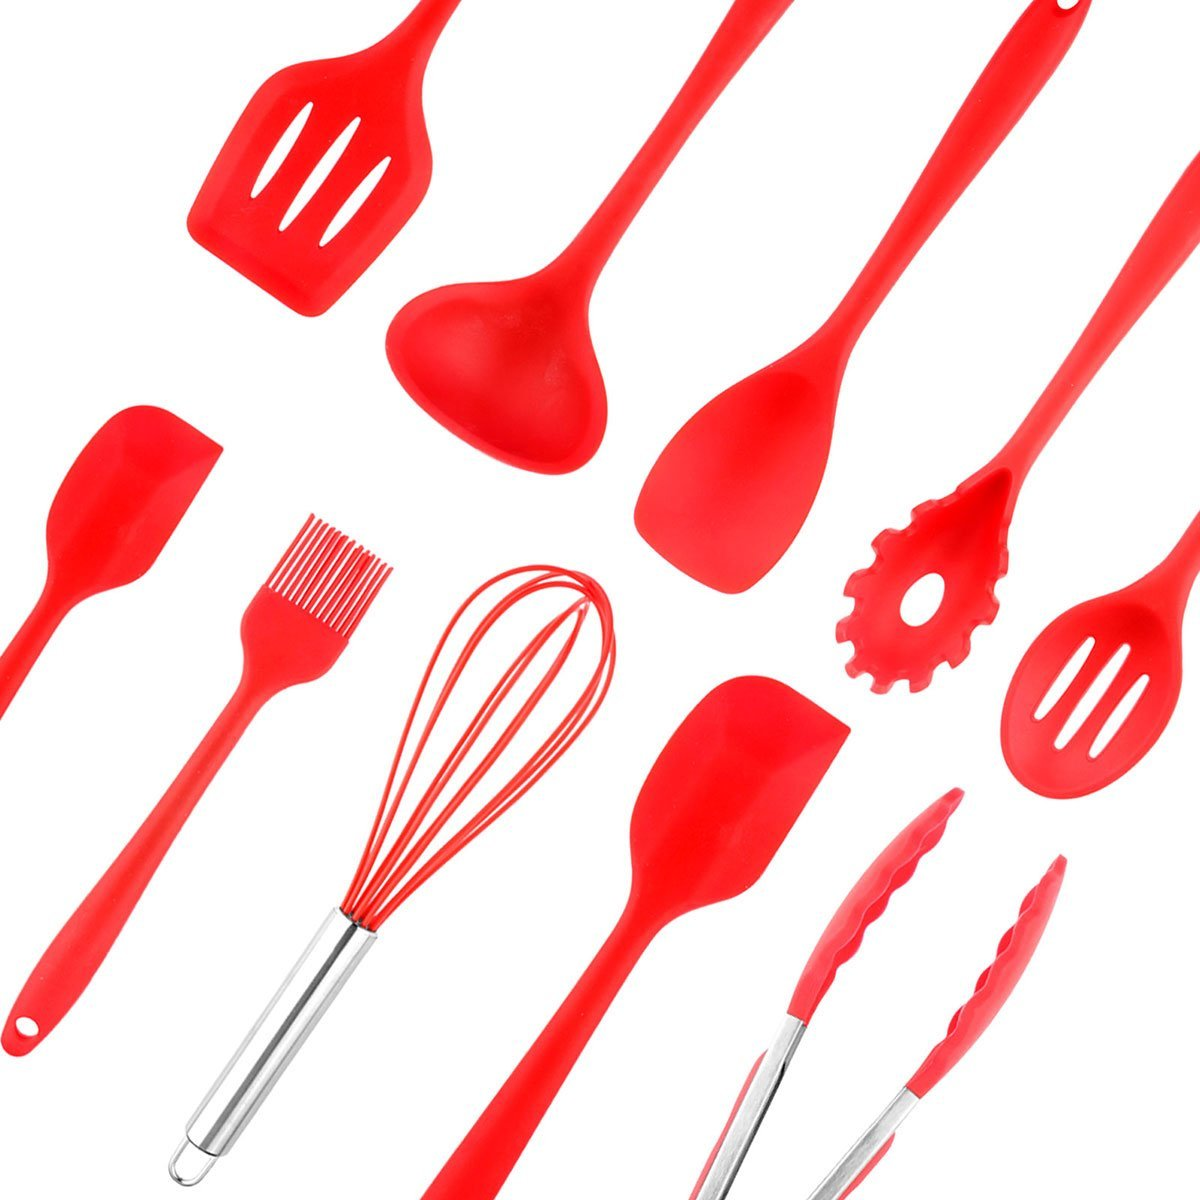 Powstro 10pcs Silicone Kitchen Utensil Set, Cooking Baking Tool Set Heat Resistant FDA Passed Home Cooking Tools Include Spoon/Brush/Whisk/Spatula/Ladle/Turner/Slotted Spoon/Tongs/Pasta Fork